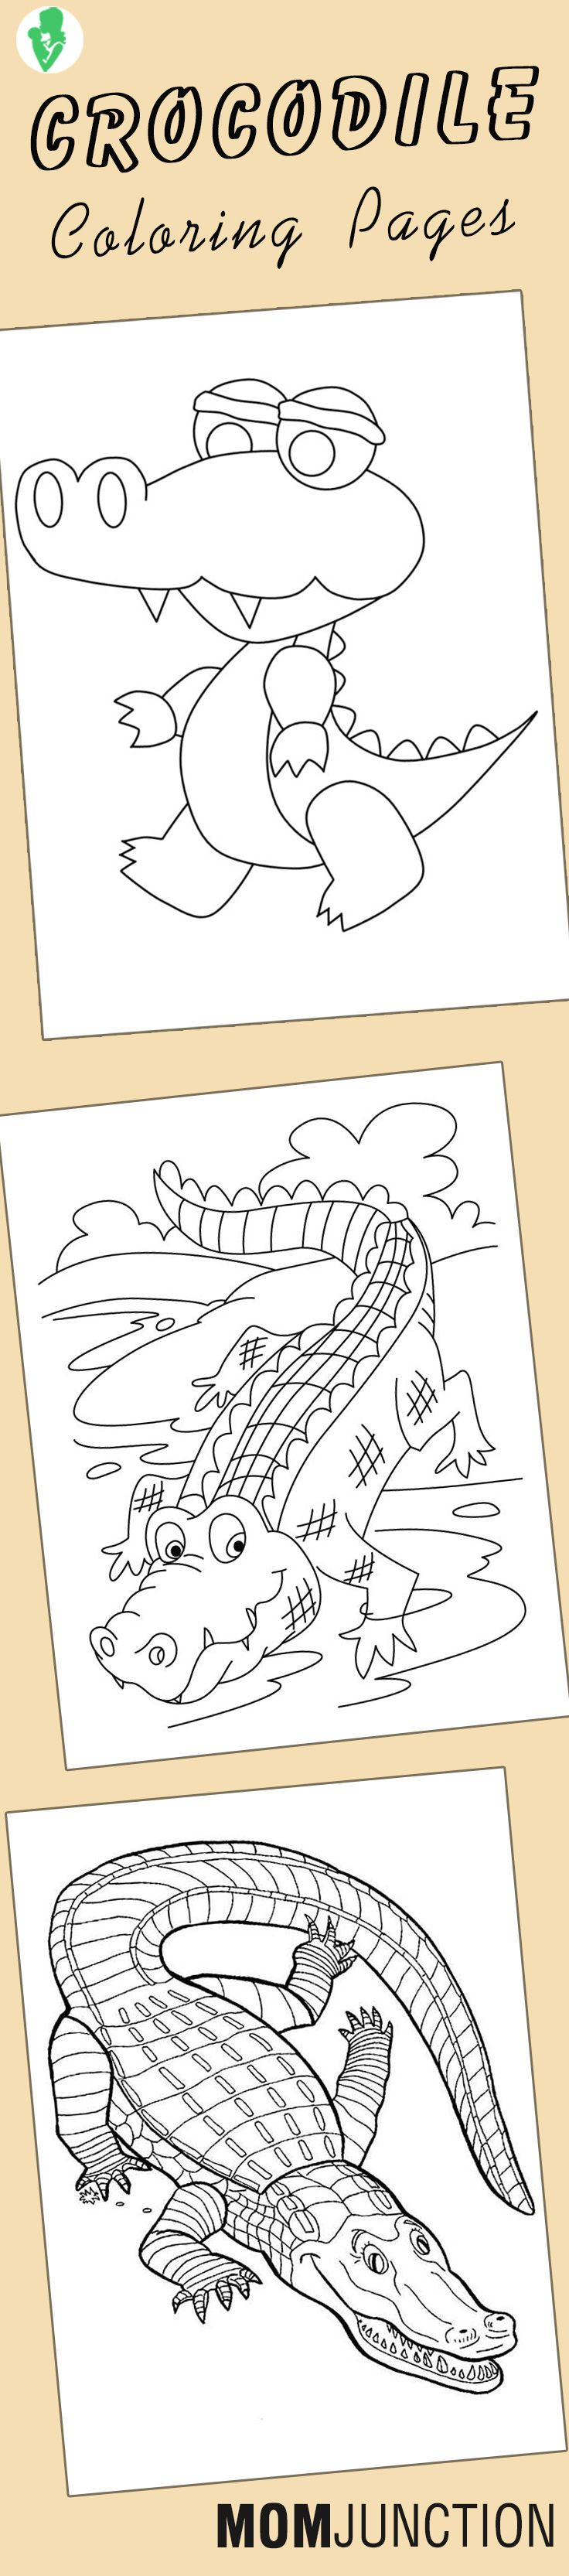 92 best coral room images on pinterest coloring sheets